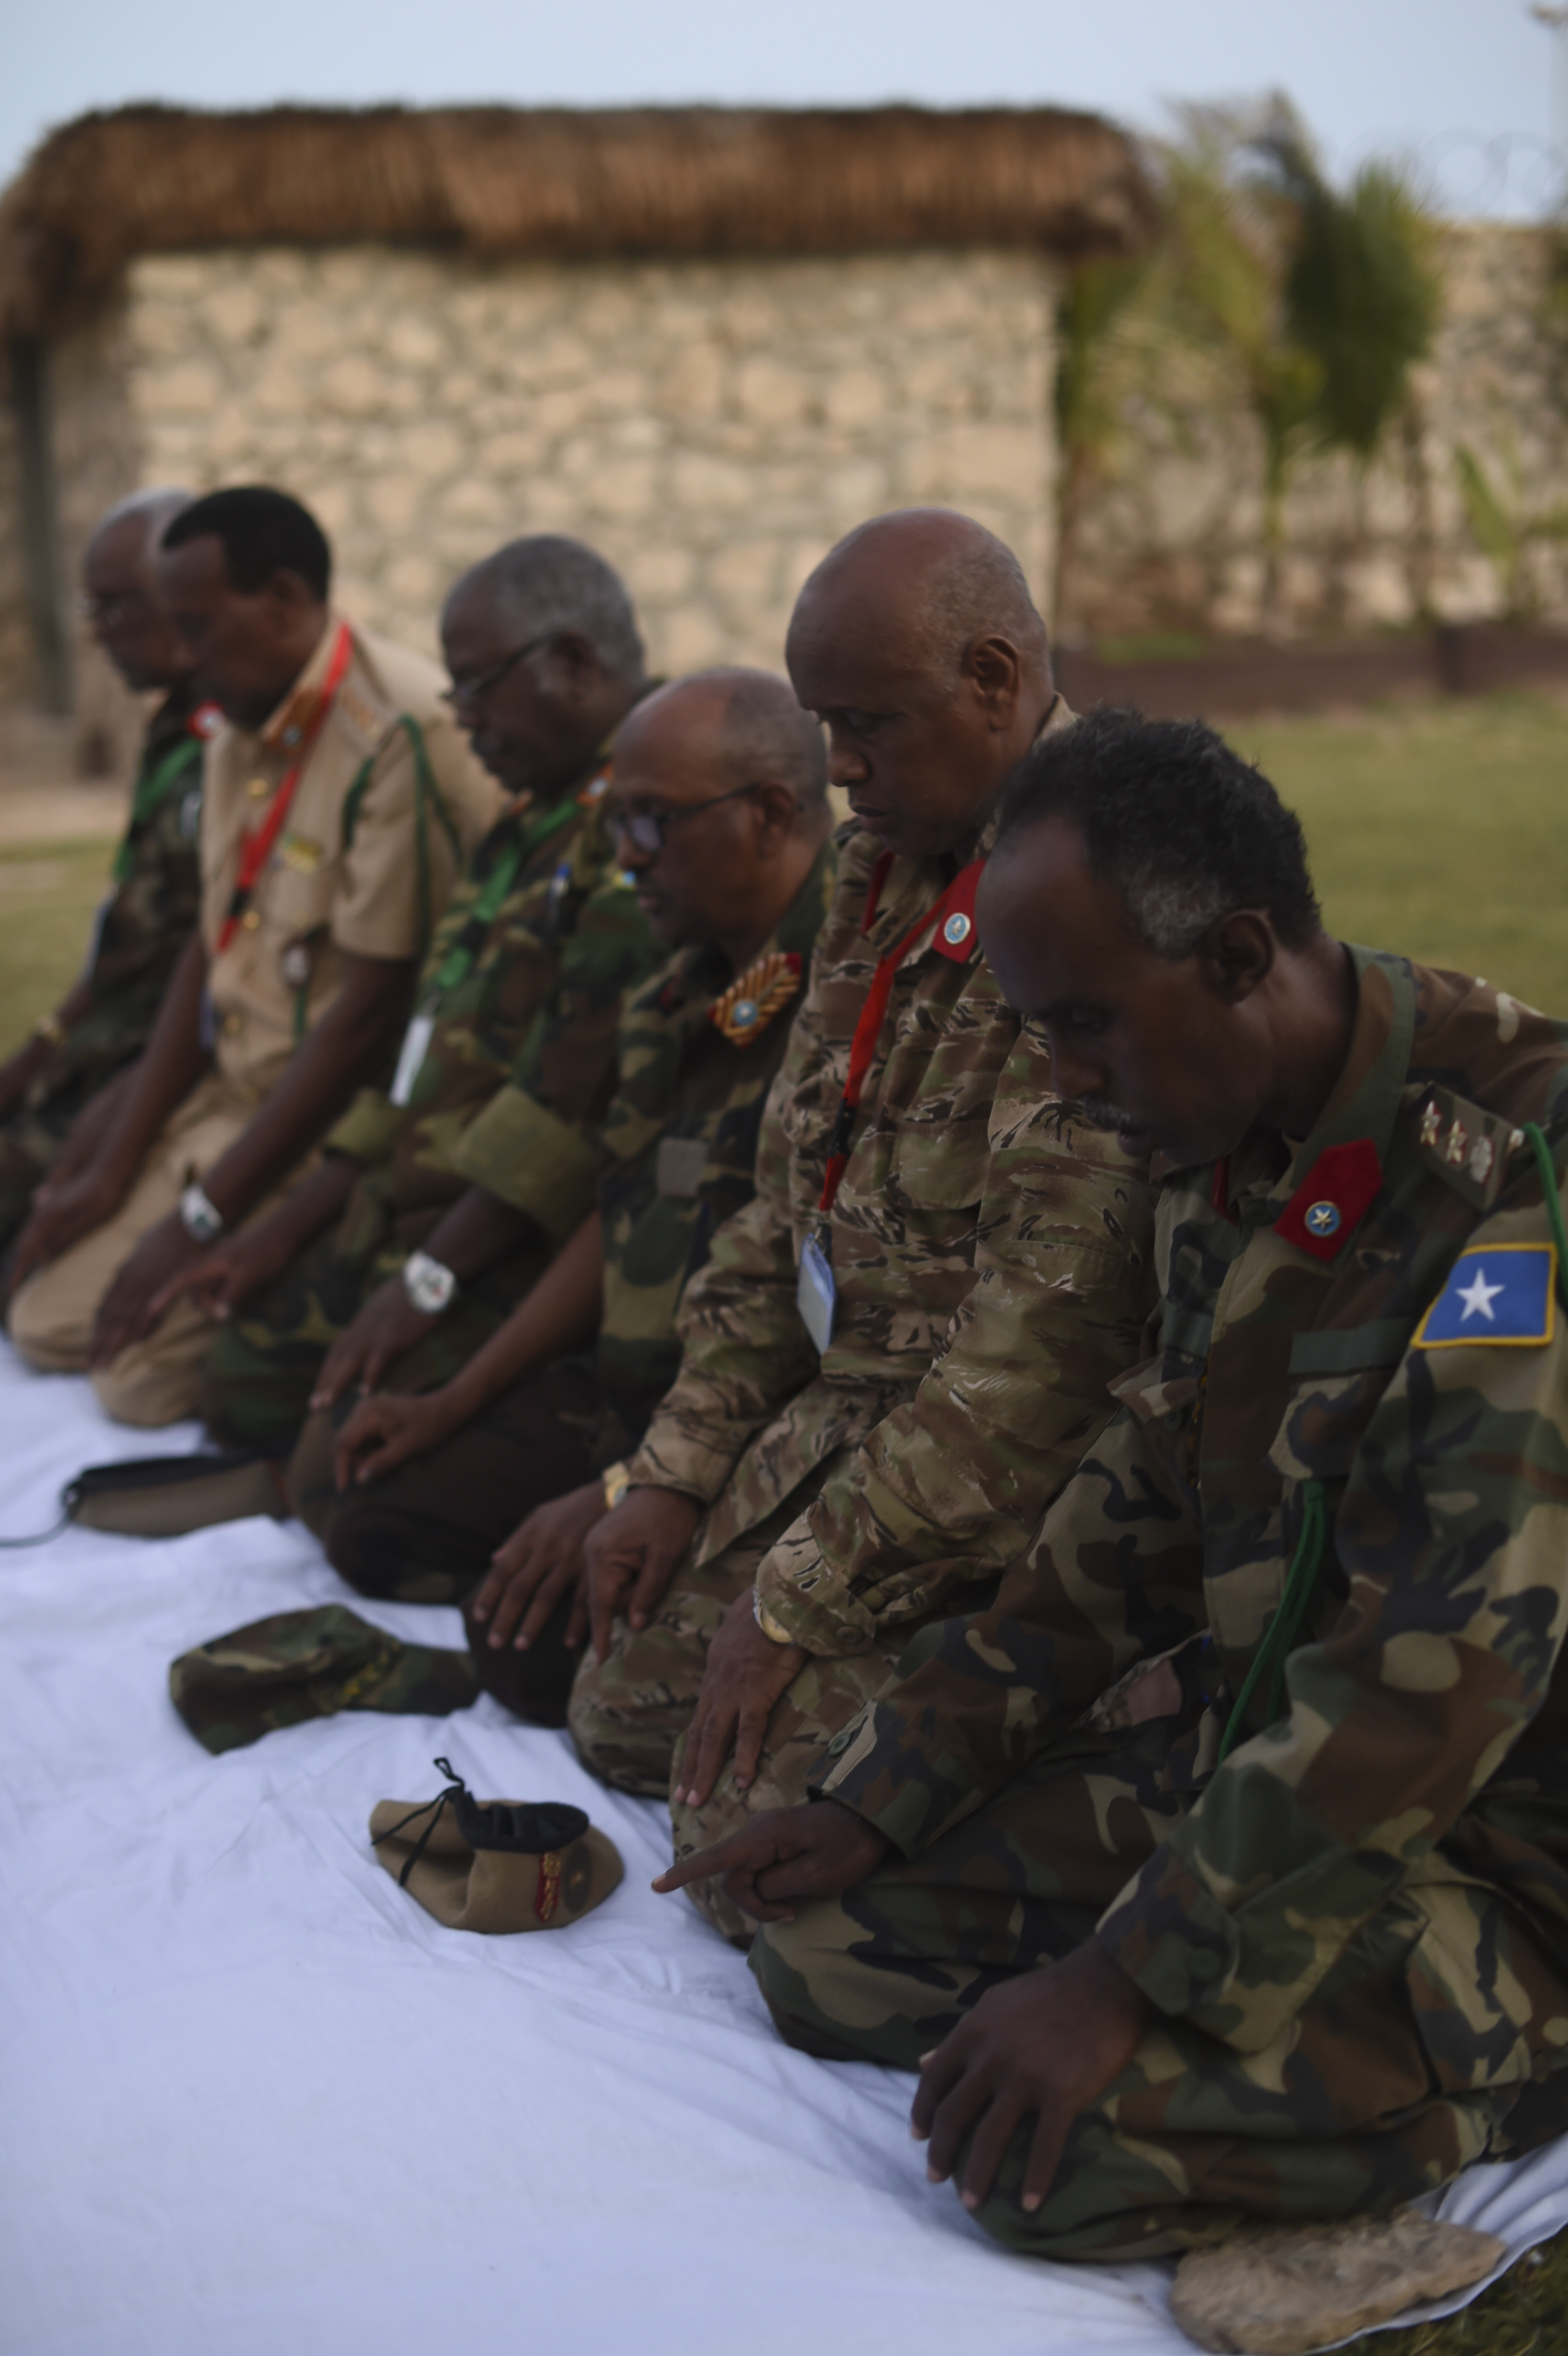 Members of the Somali National Army kneel to pray before an Iftar at the Mogadishu International Airport, Mogadishu, Somalia, June 5, 2017. Iftar is the evening meal when Muslims end their daily Ramadan fast at sunset. (U.S. Air Force Photo by Staff Sgt. Eboni Prince)